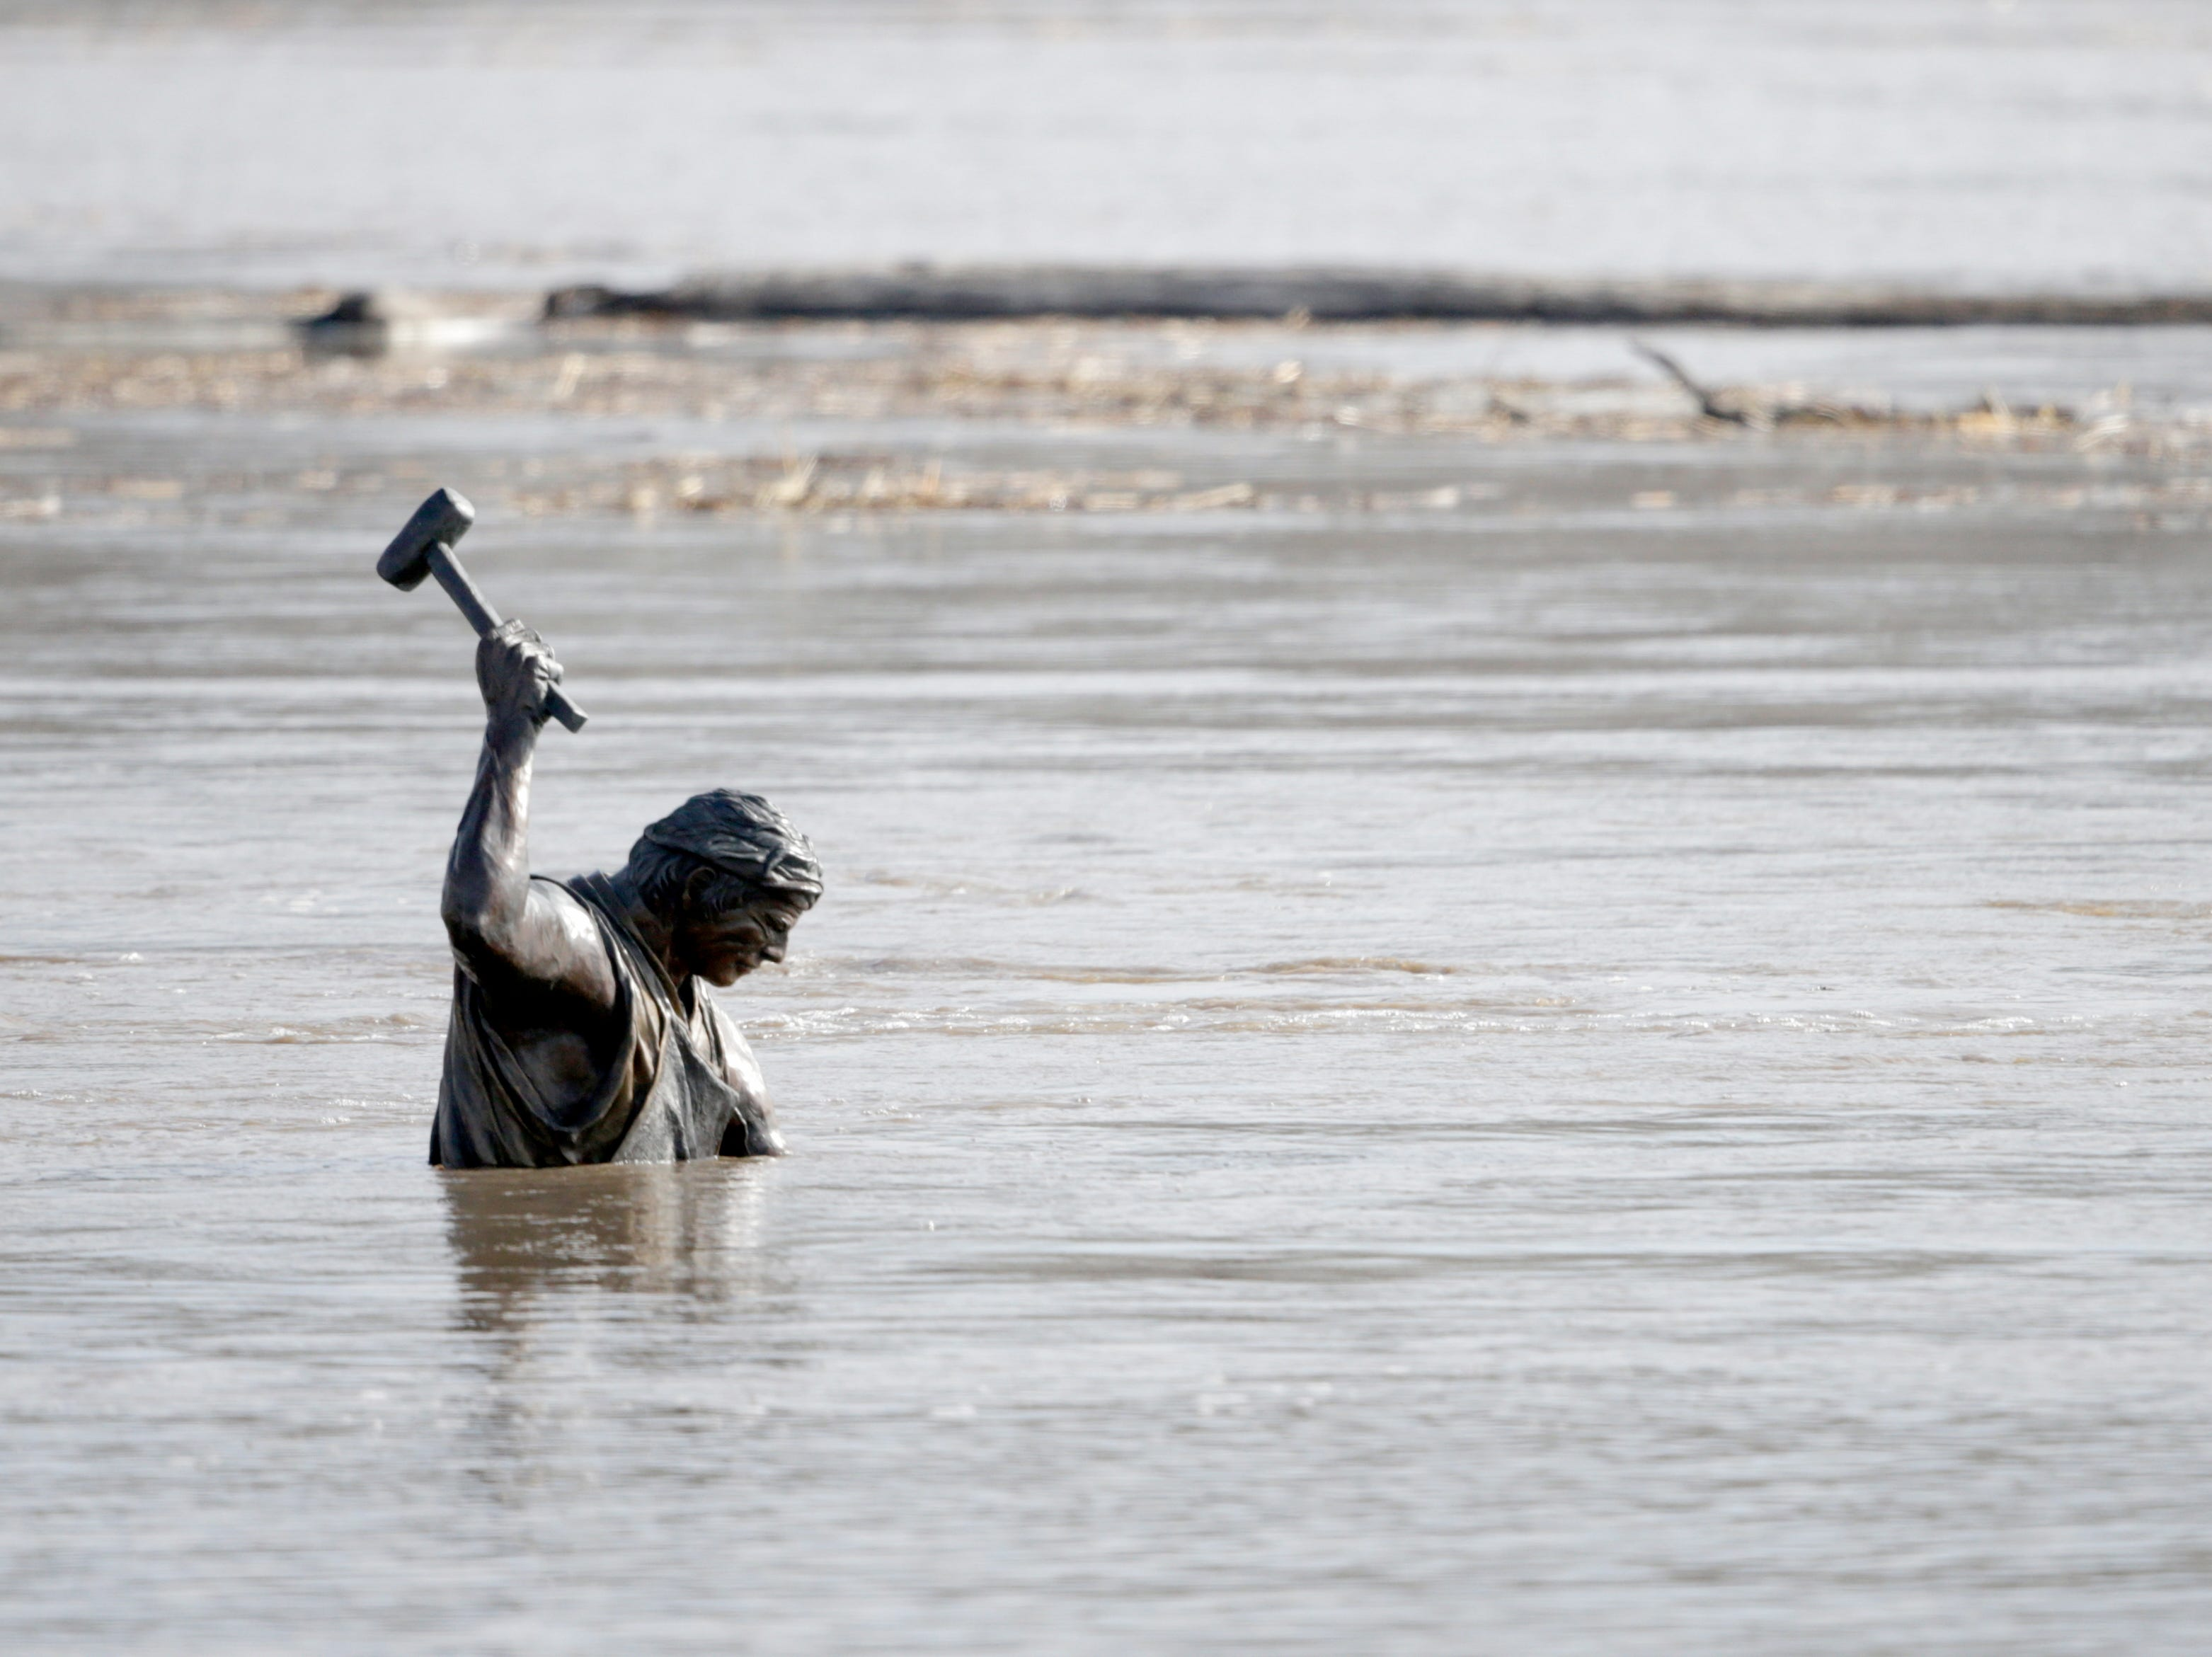 Debris float by as the high waters of the Missouri River almost submerge a blacksmith, part of the Monument to Labor statue by Matthew J. Placzek, in Omaha, Neb., Saturday, March 16, 2019. Thousands of people have been urged to evacuate along eastern Nebraska rivers as a massive late-winter storm has pushed streams and rivers out of their banks throughout the Midwest.